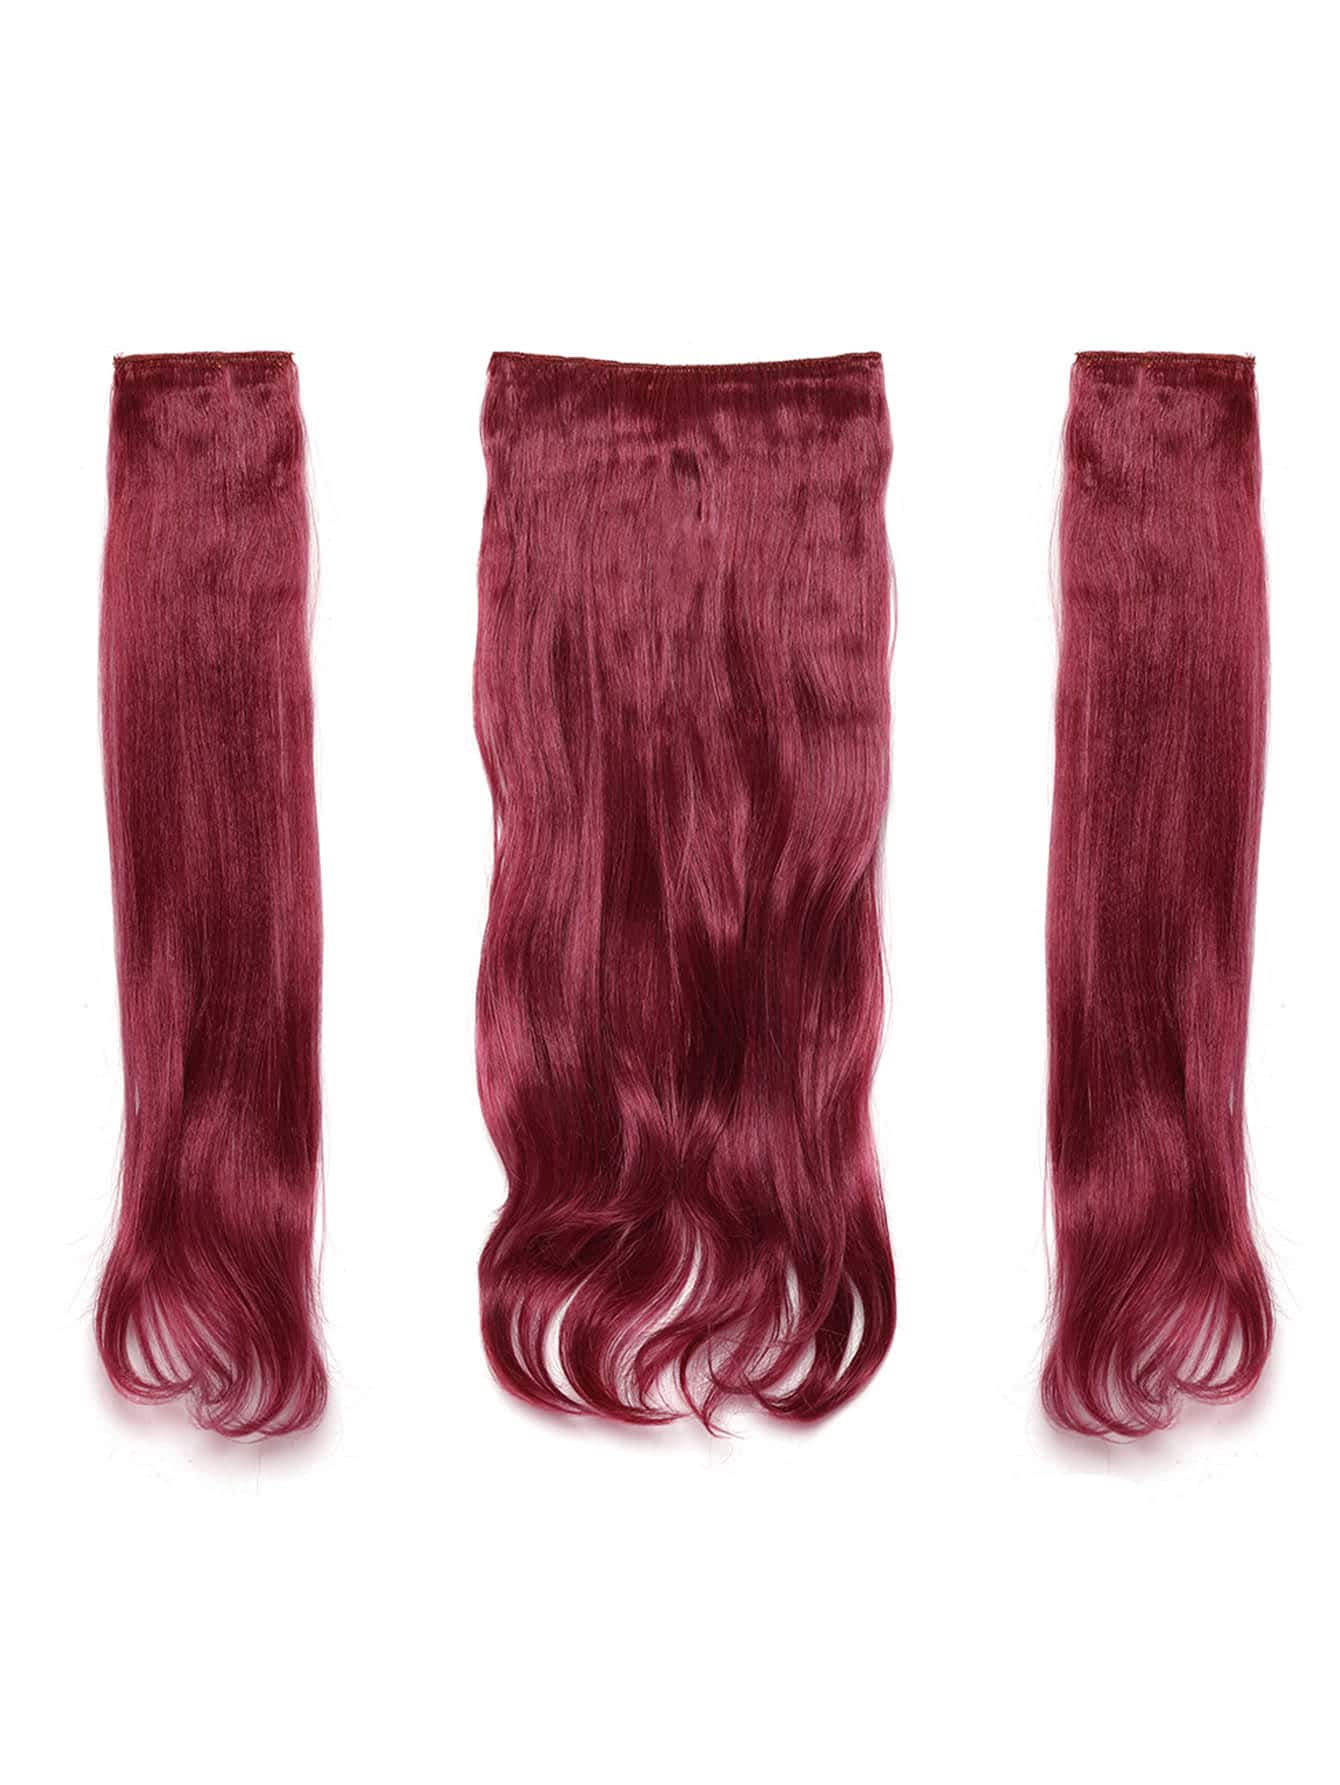 Burgundy Clip In Soft Wave Hair Extension 3pcs